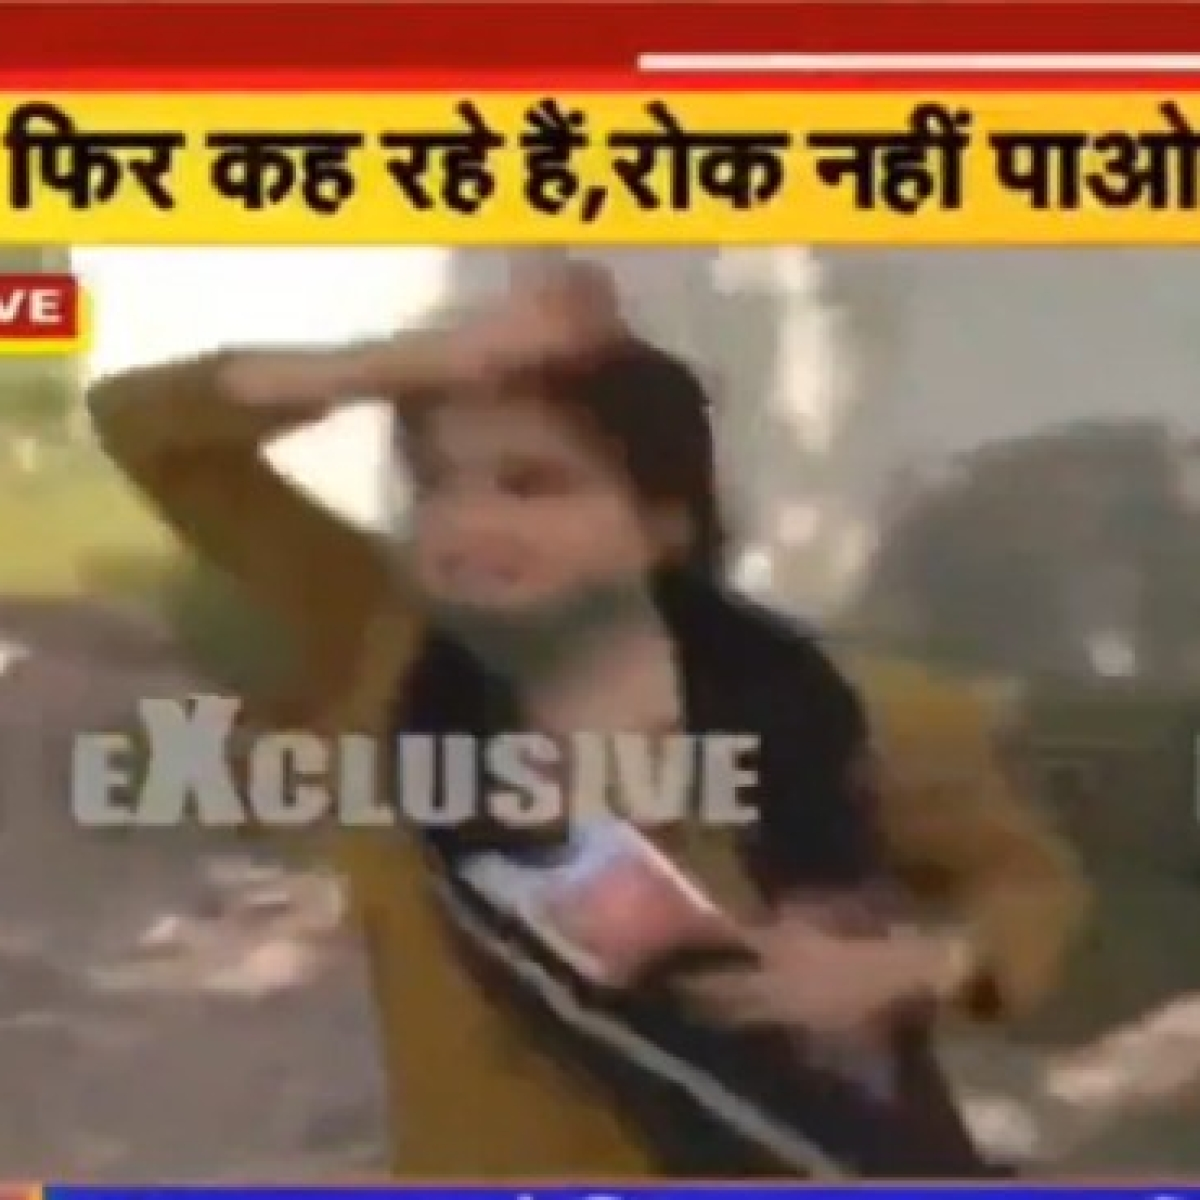 'Arnab se training li hogi': Twitter reacts as journalist 'overacts' while reporting Hathras horror